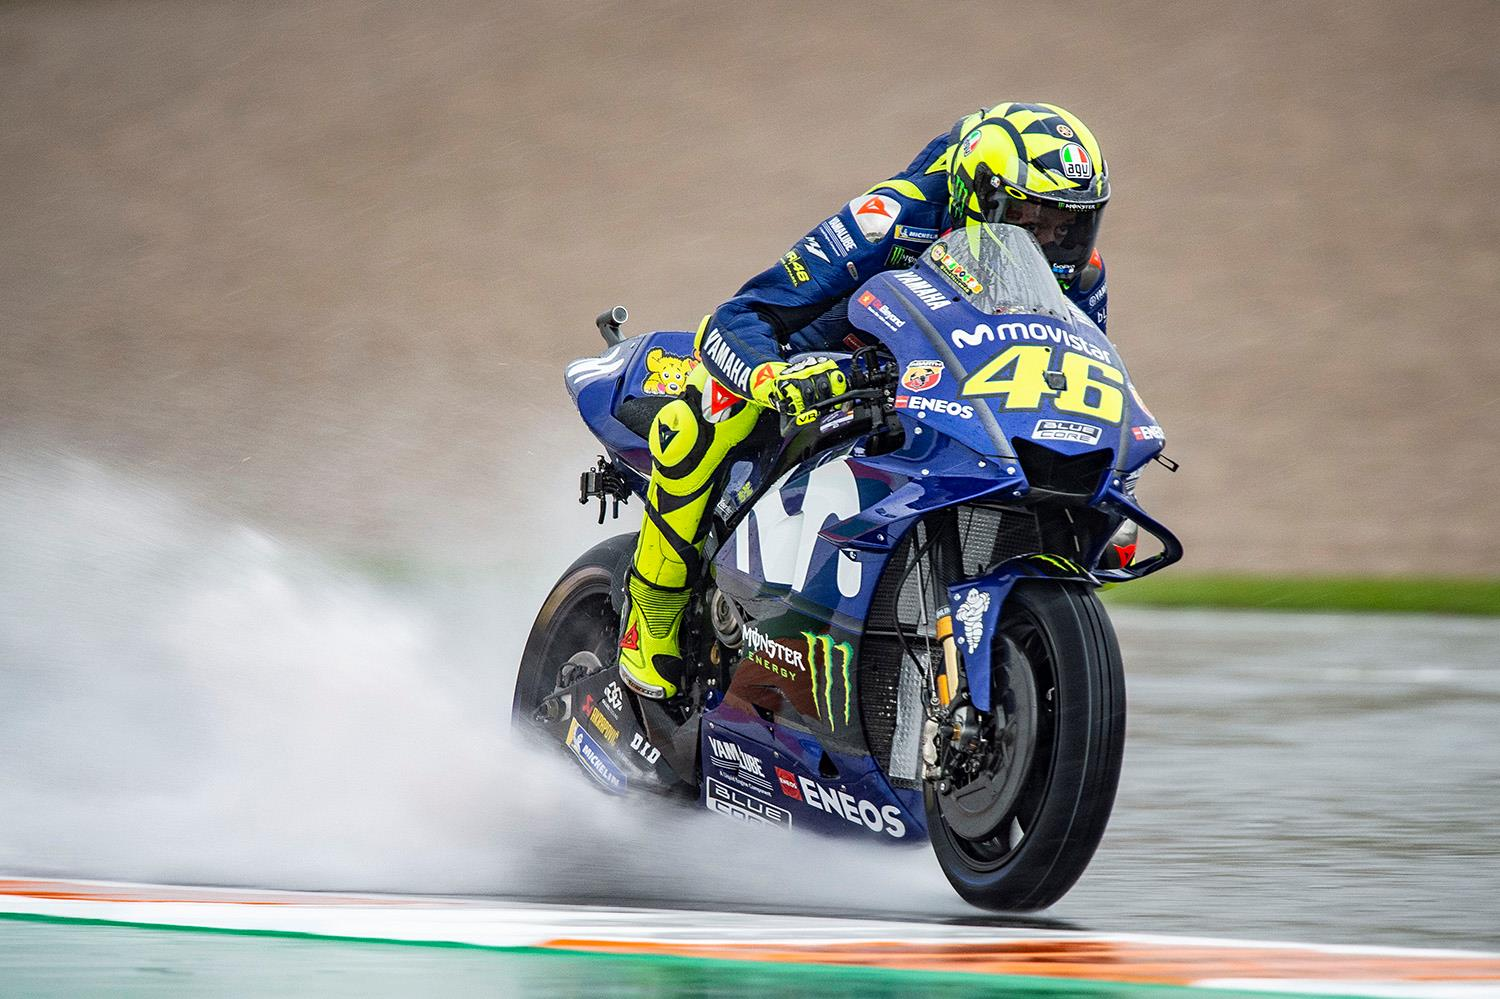 MotoGP Rider of the Year: 5th